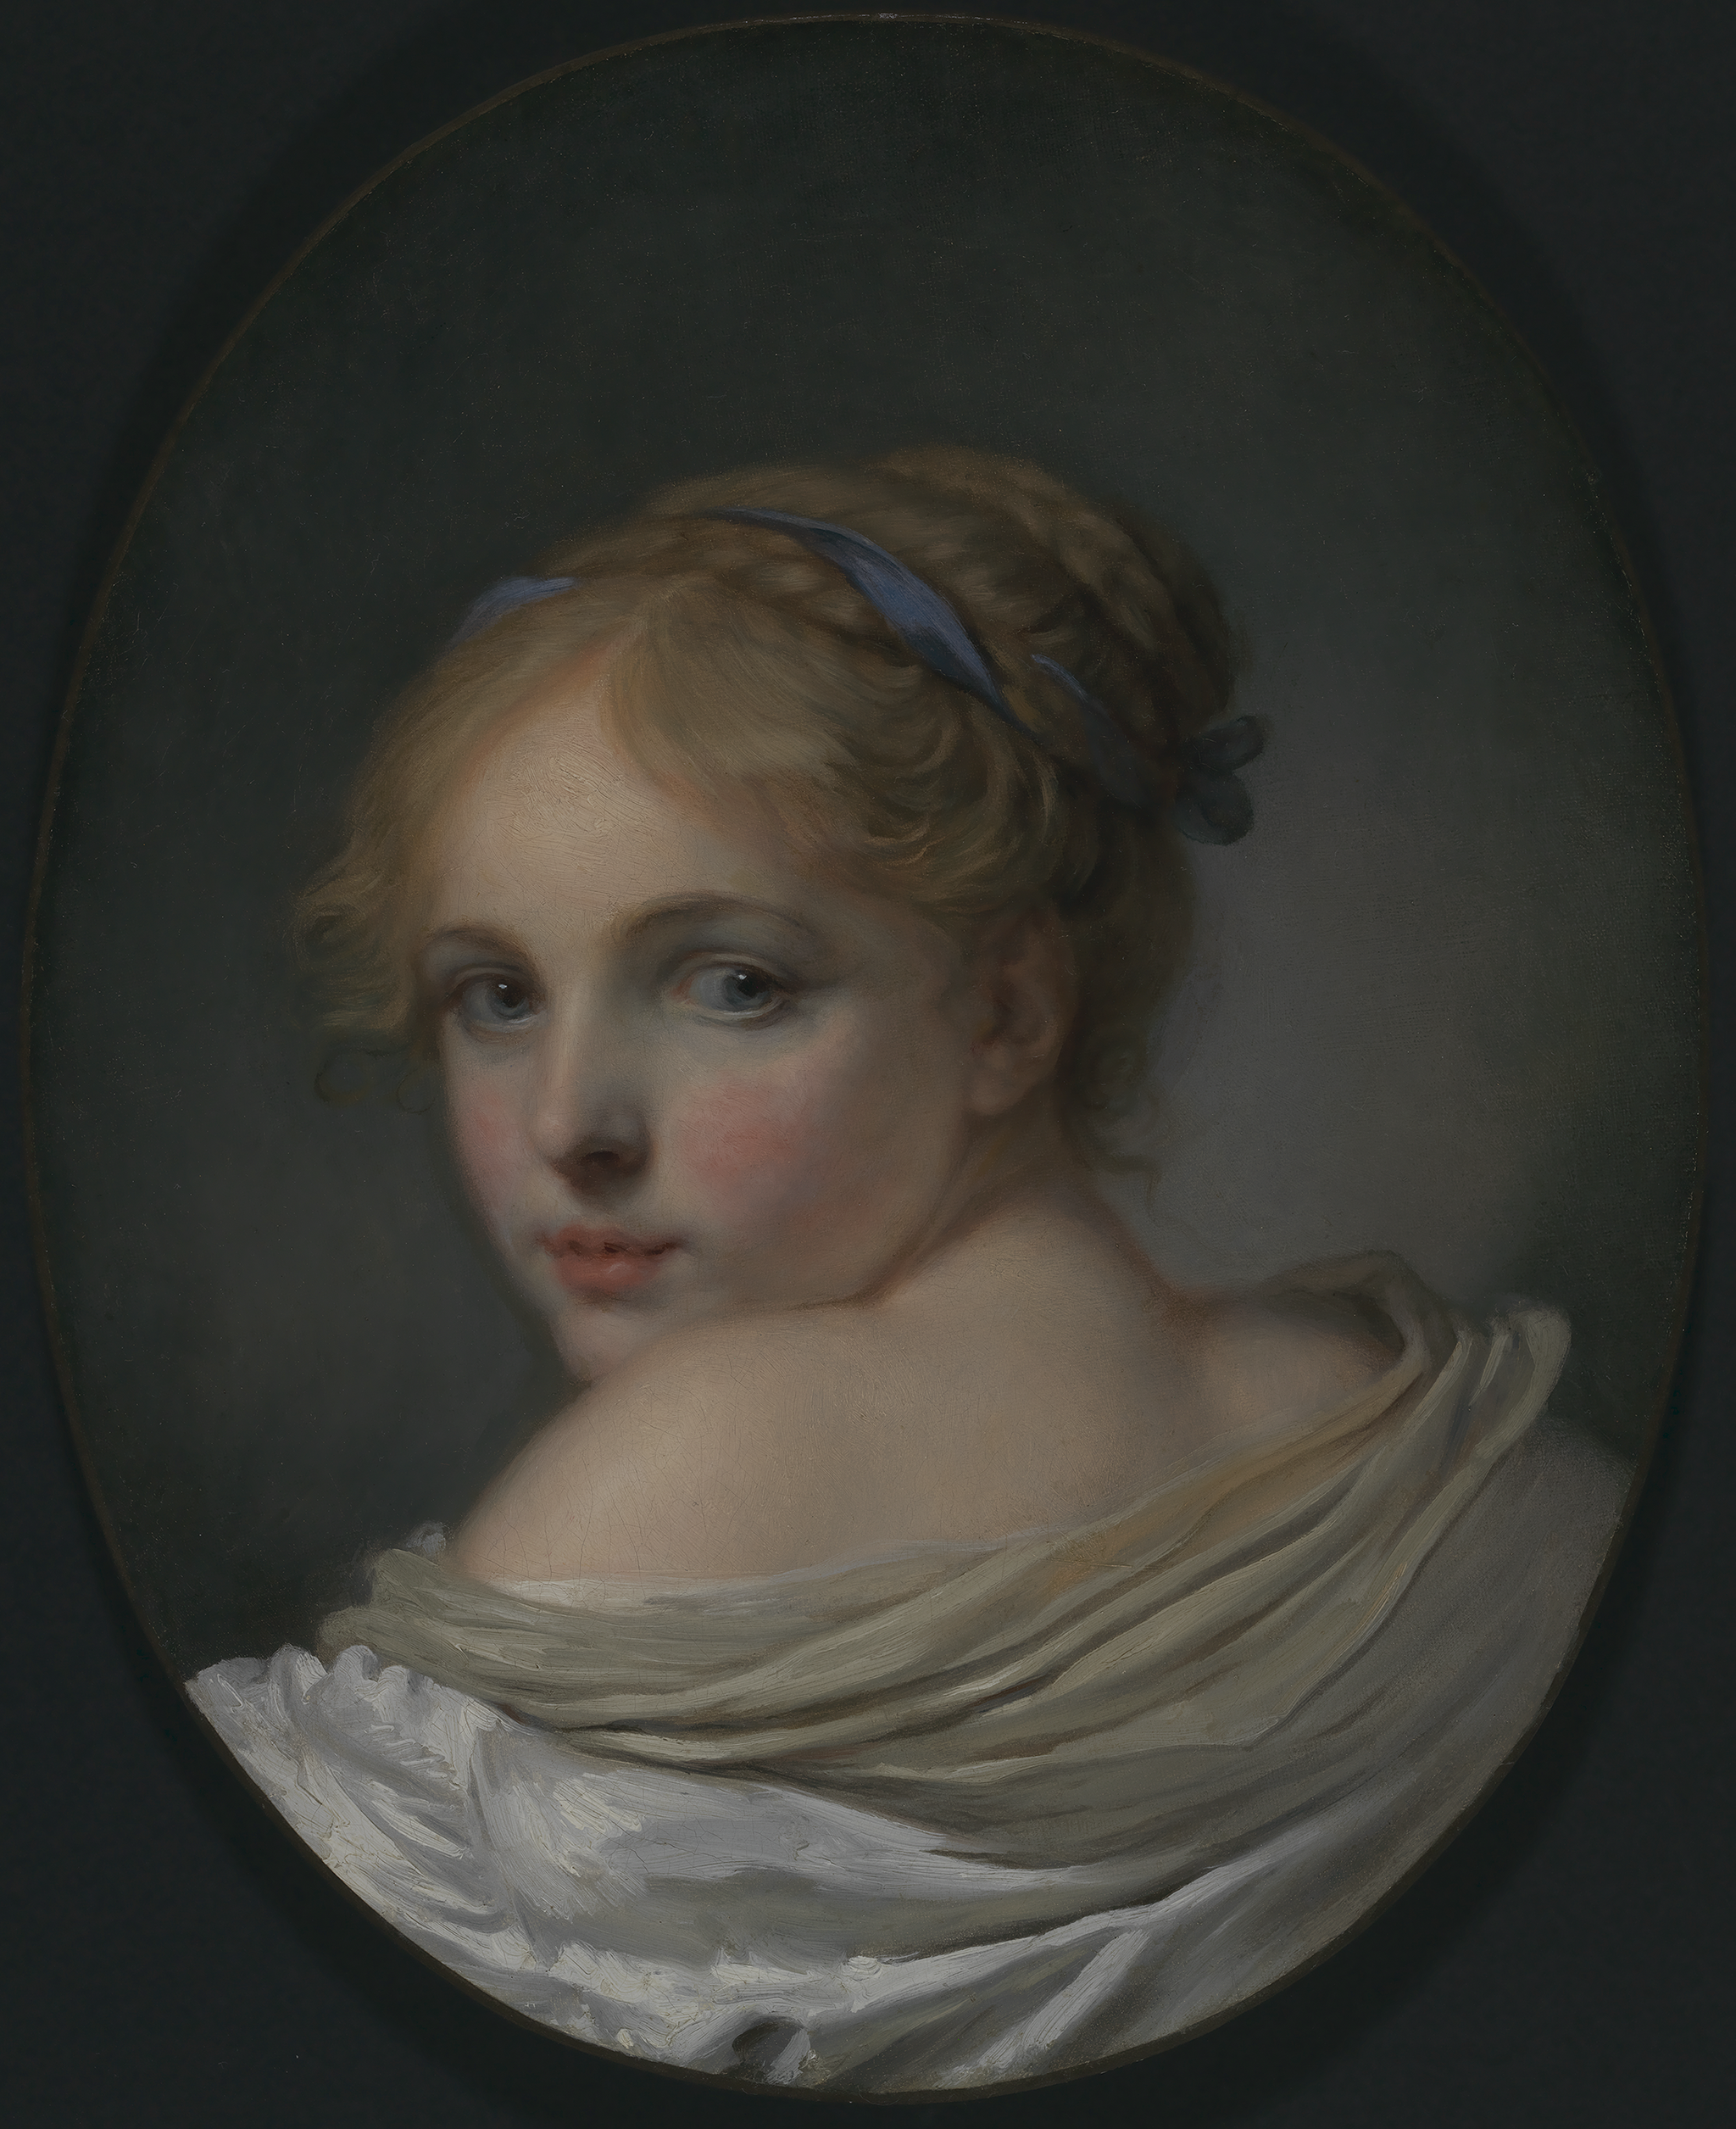 Head of a young girl looking over left shoulder; drapery low on her shoulders.